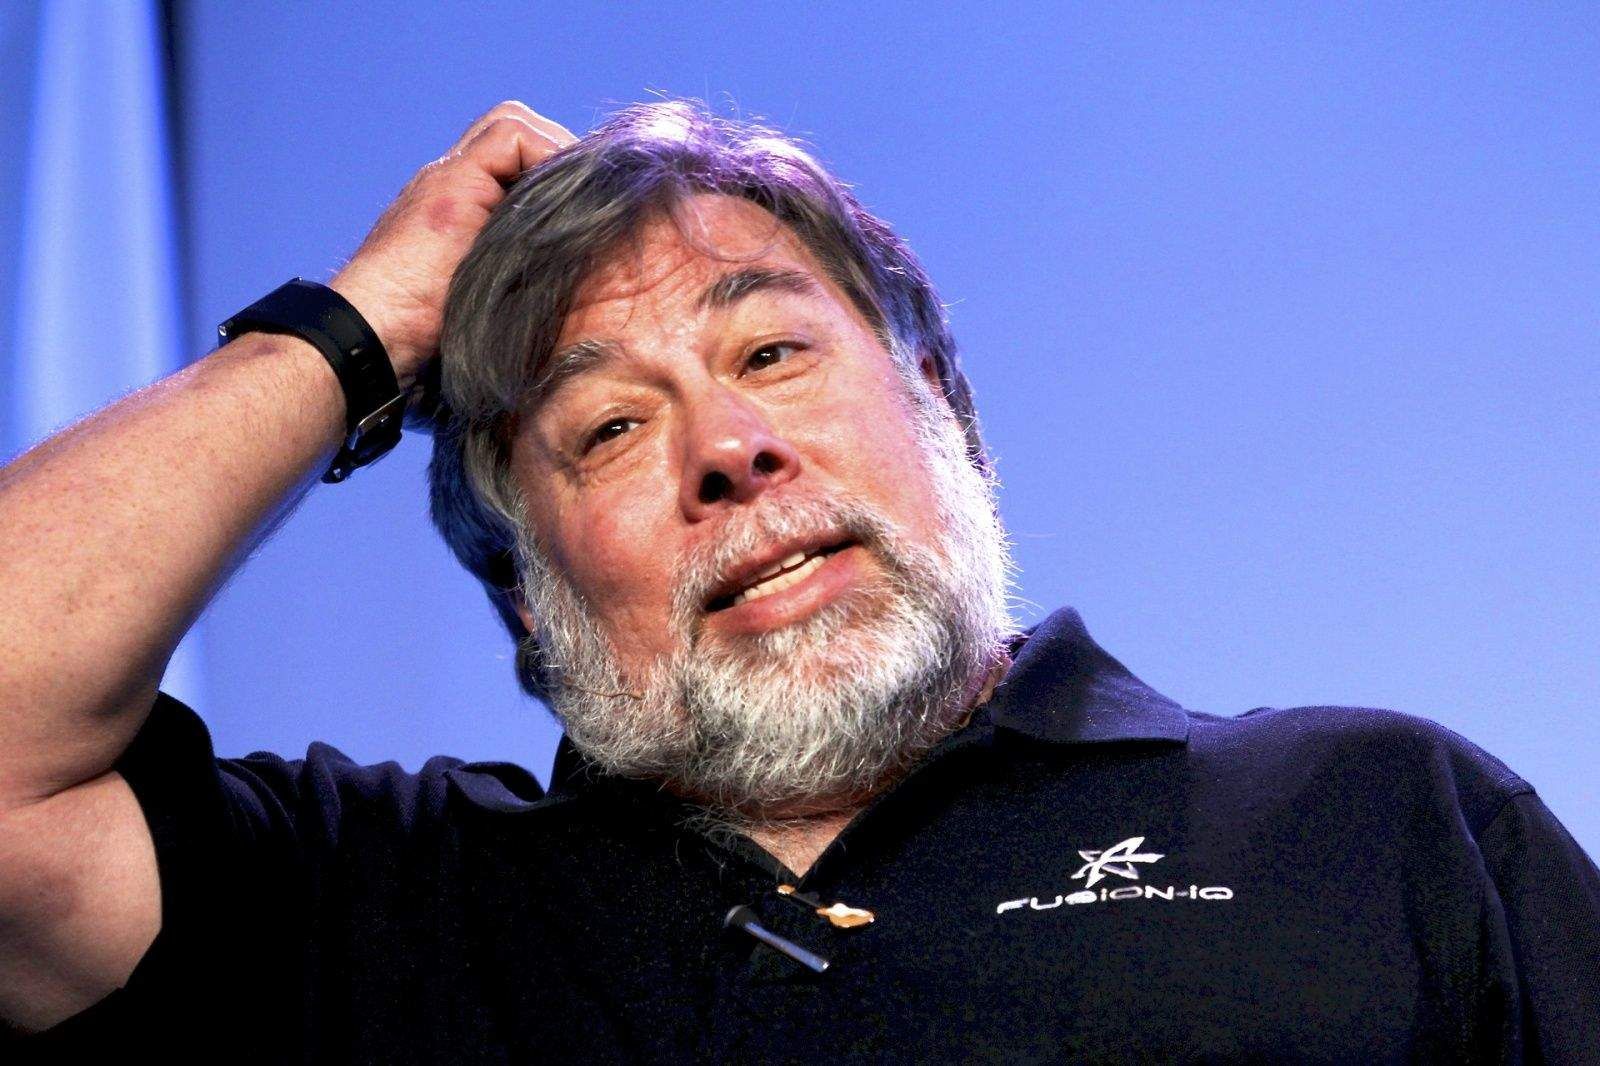 Gadget-loving Steve Wozniak sounds like he won't be queuing for the iWatch on its day of release.